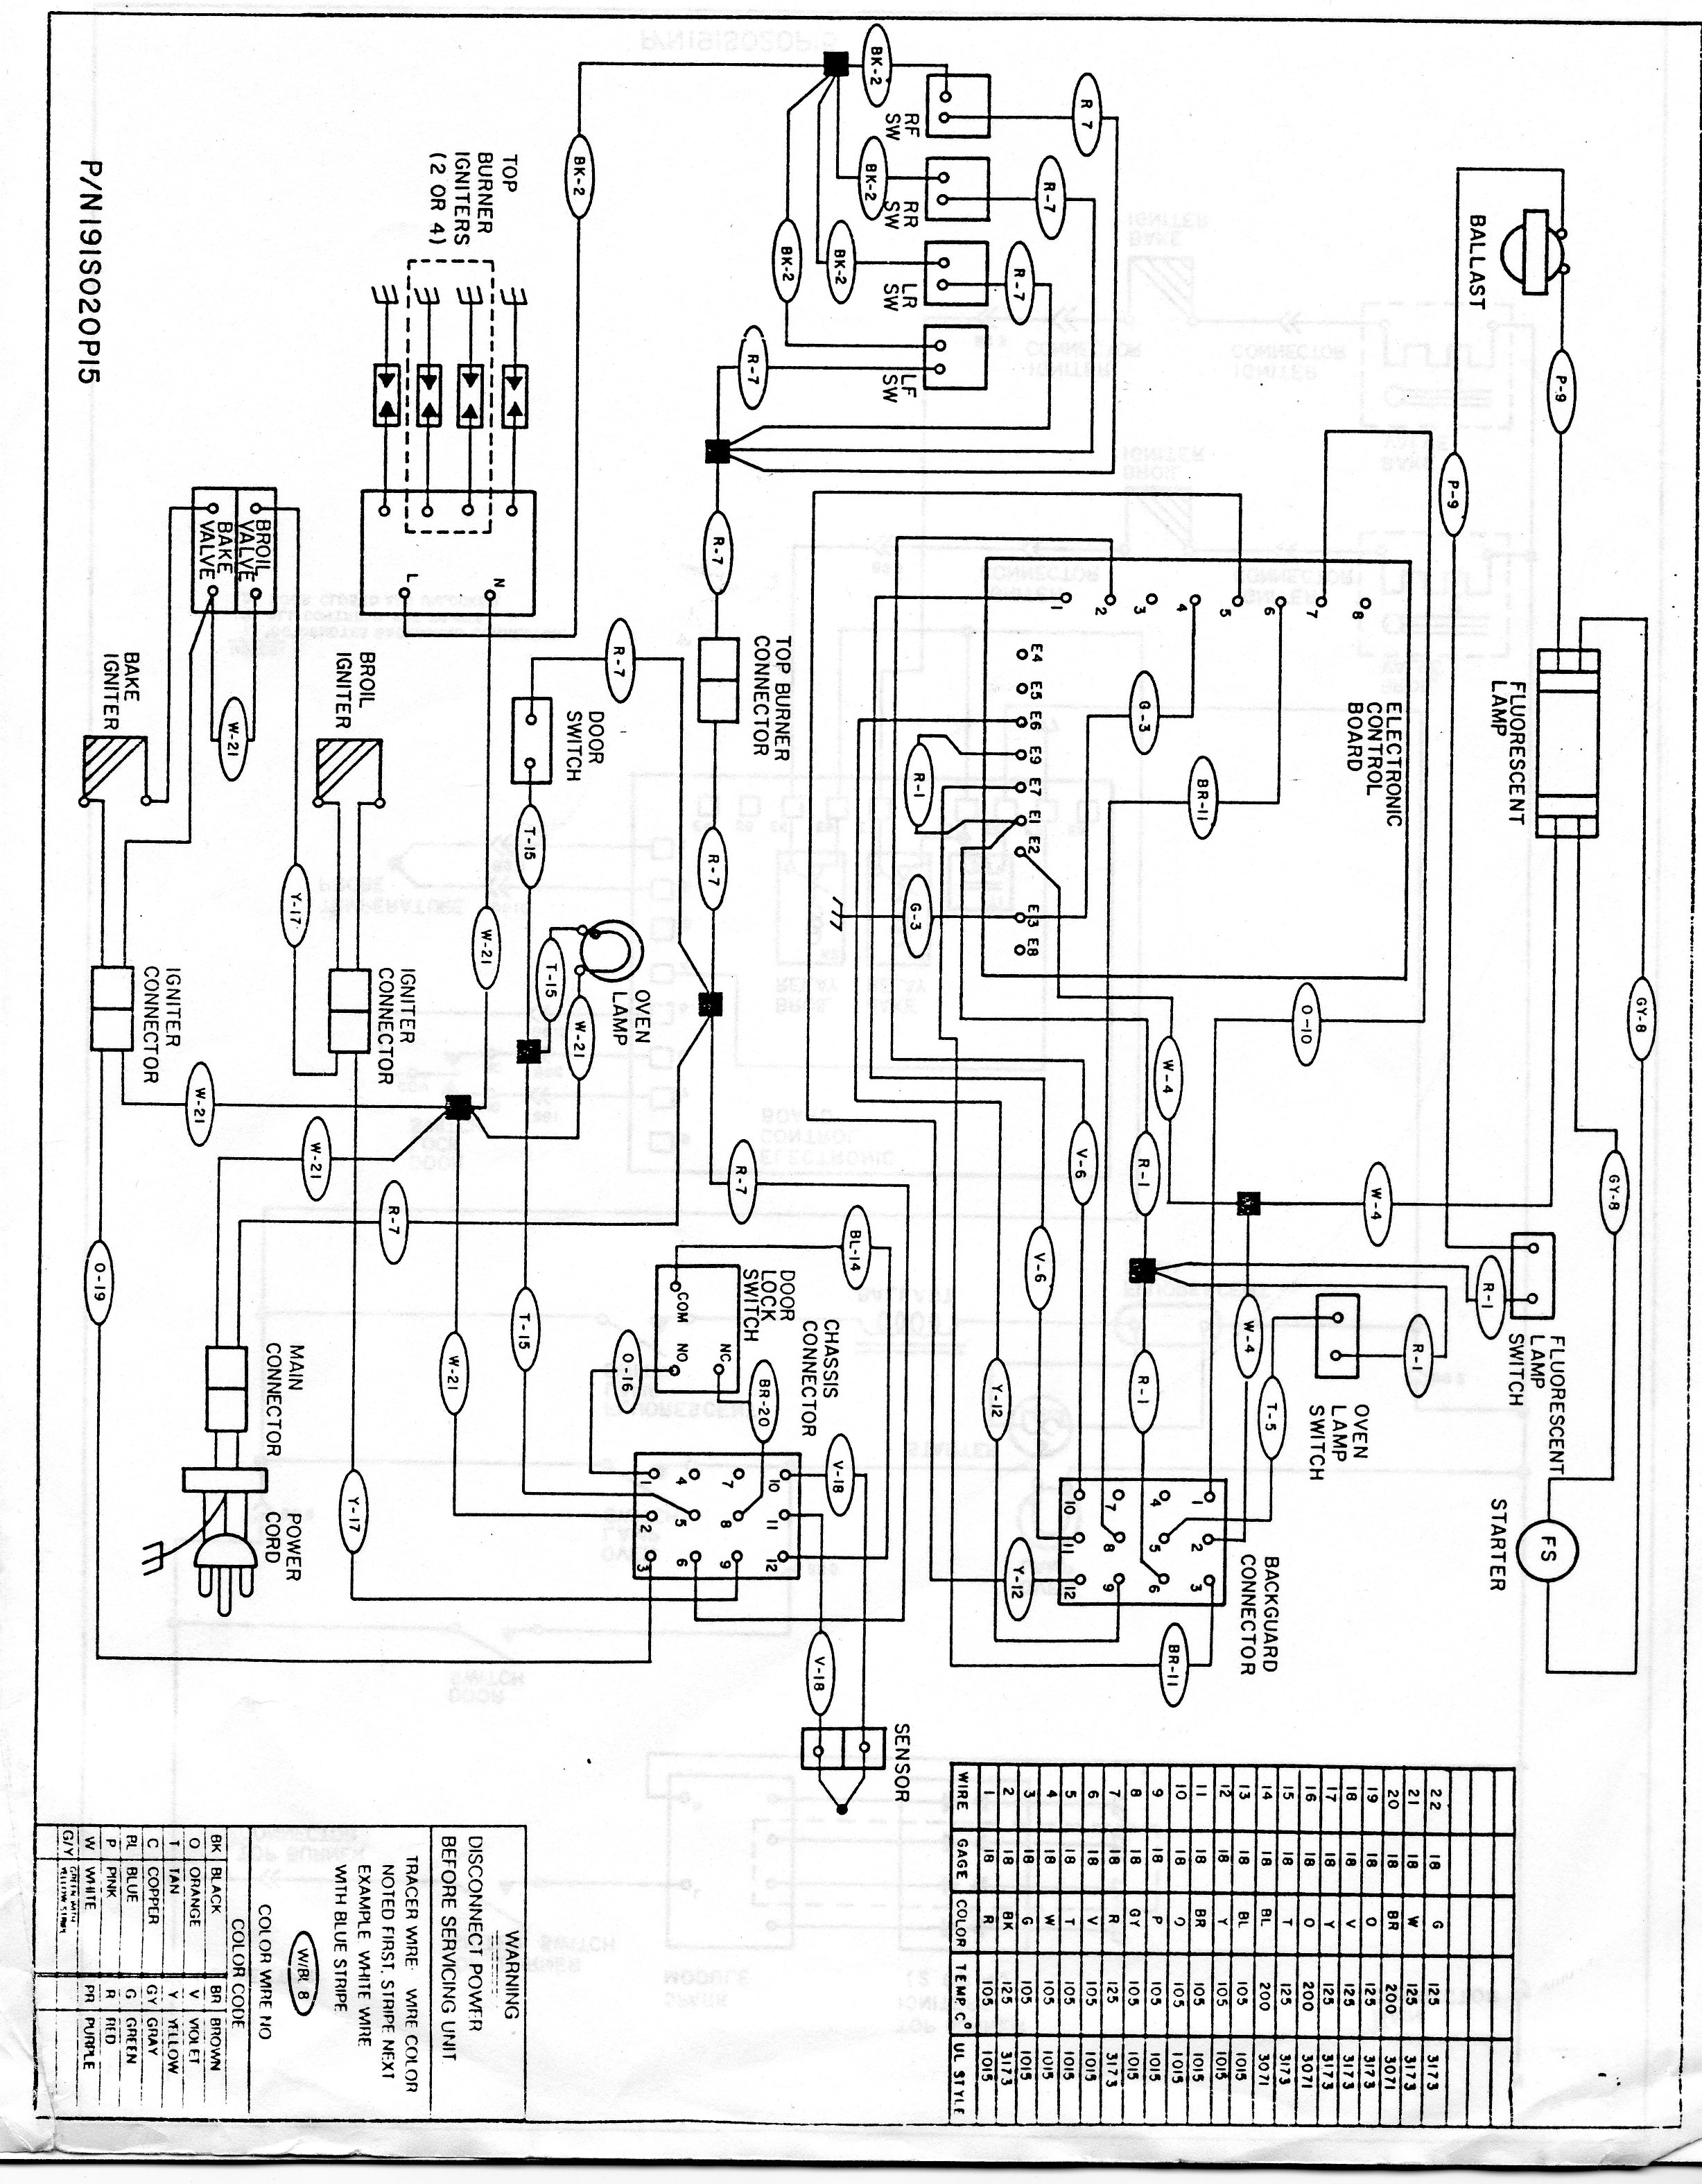 tappan electric stove wiring diagram i have a tappan range model number 30-3989-00/05 which i ...